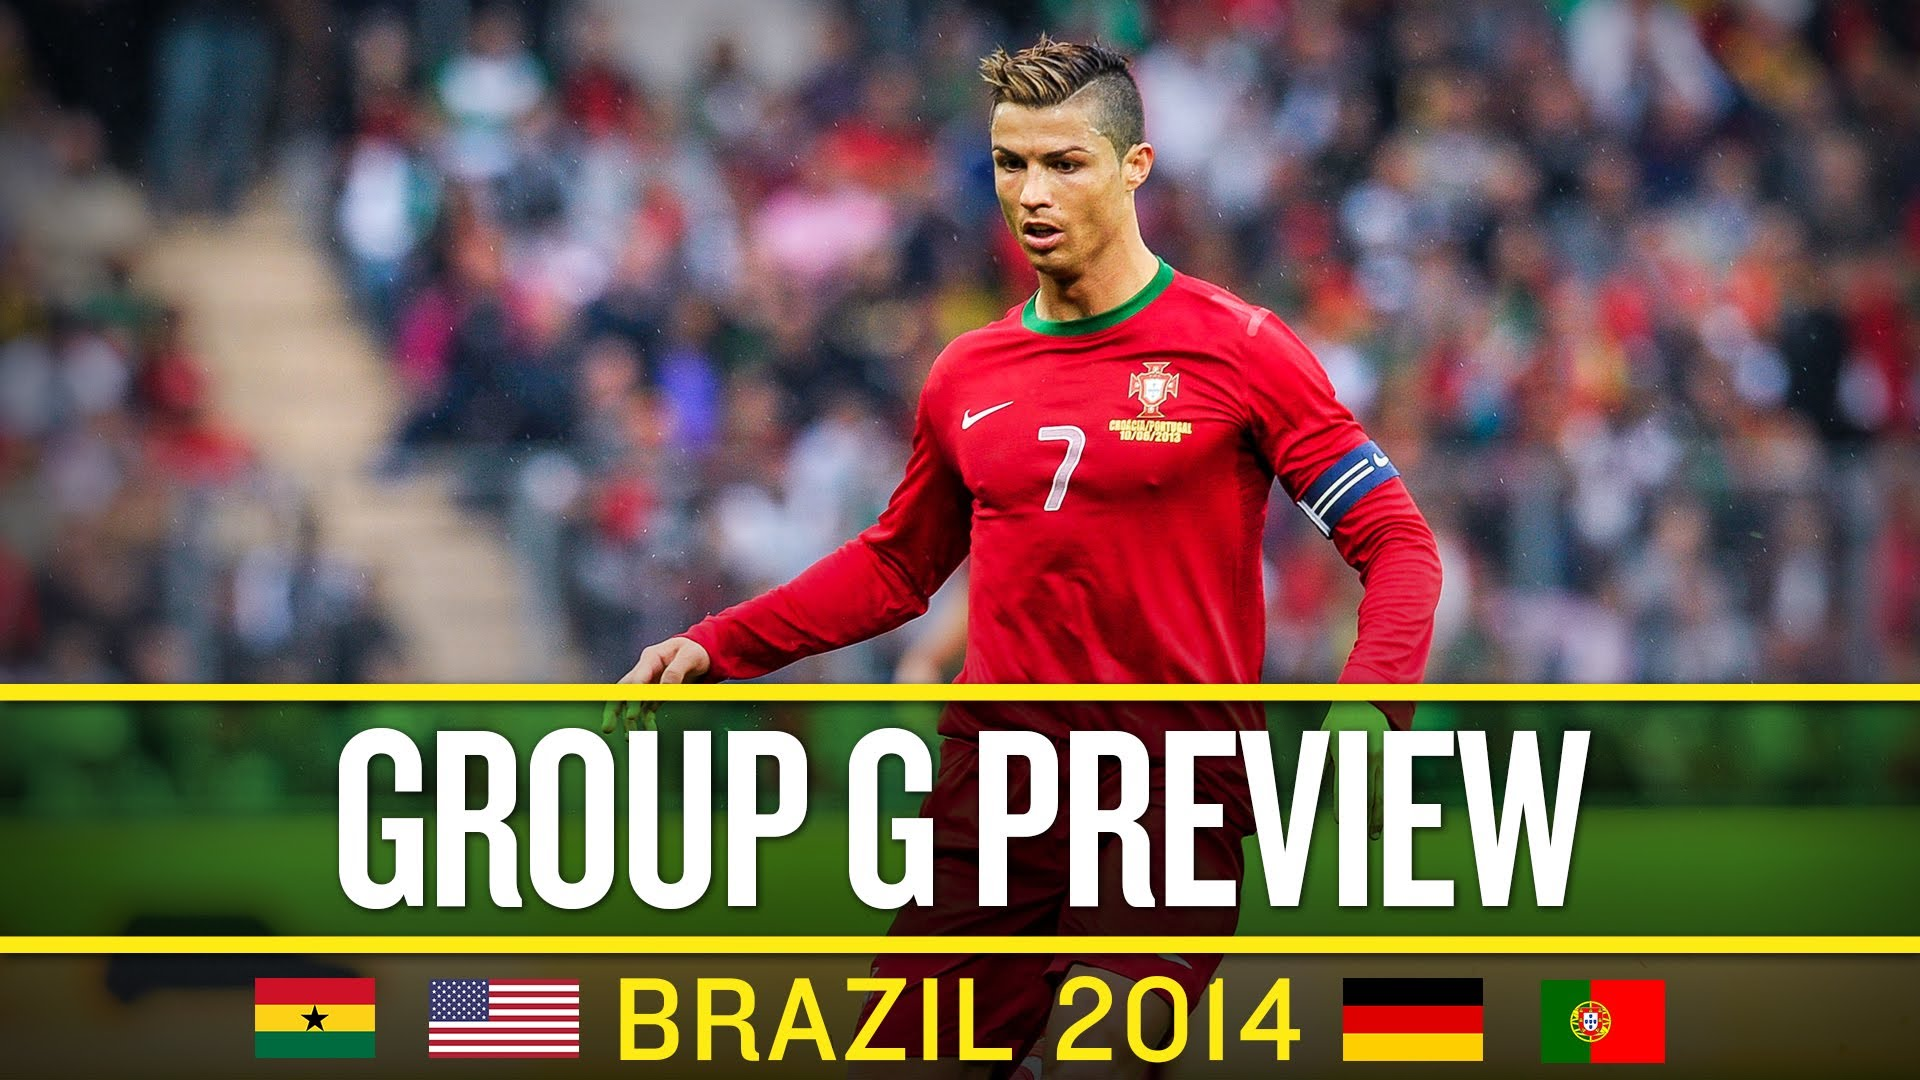 2014 World Cup: Group G Preview